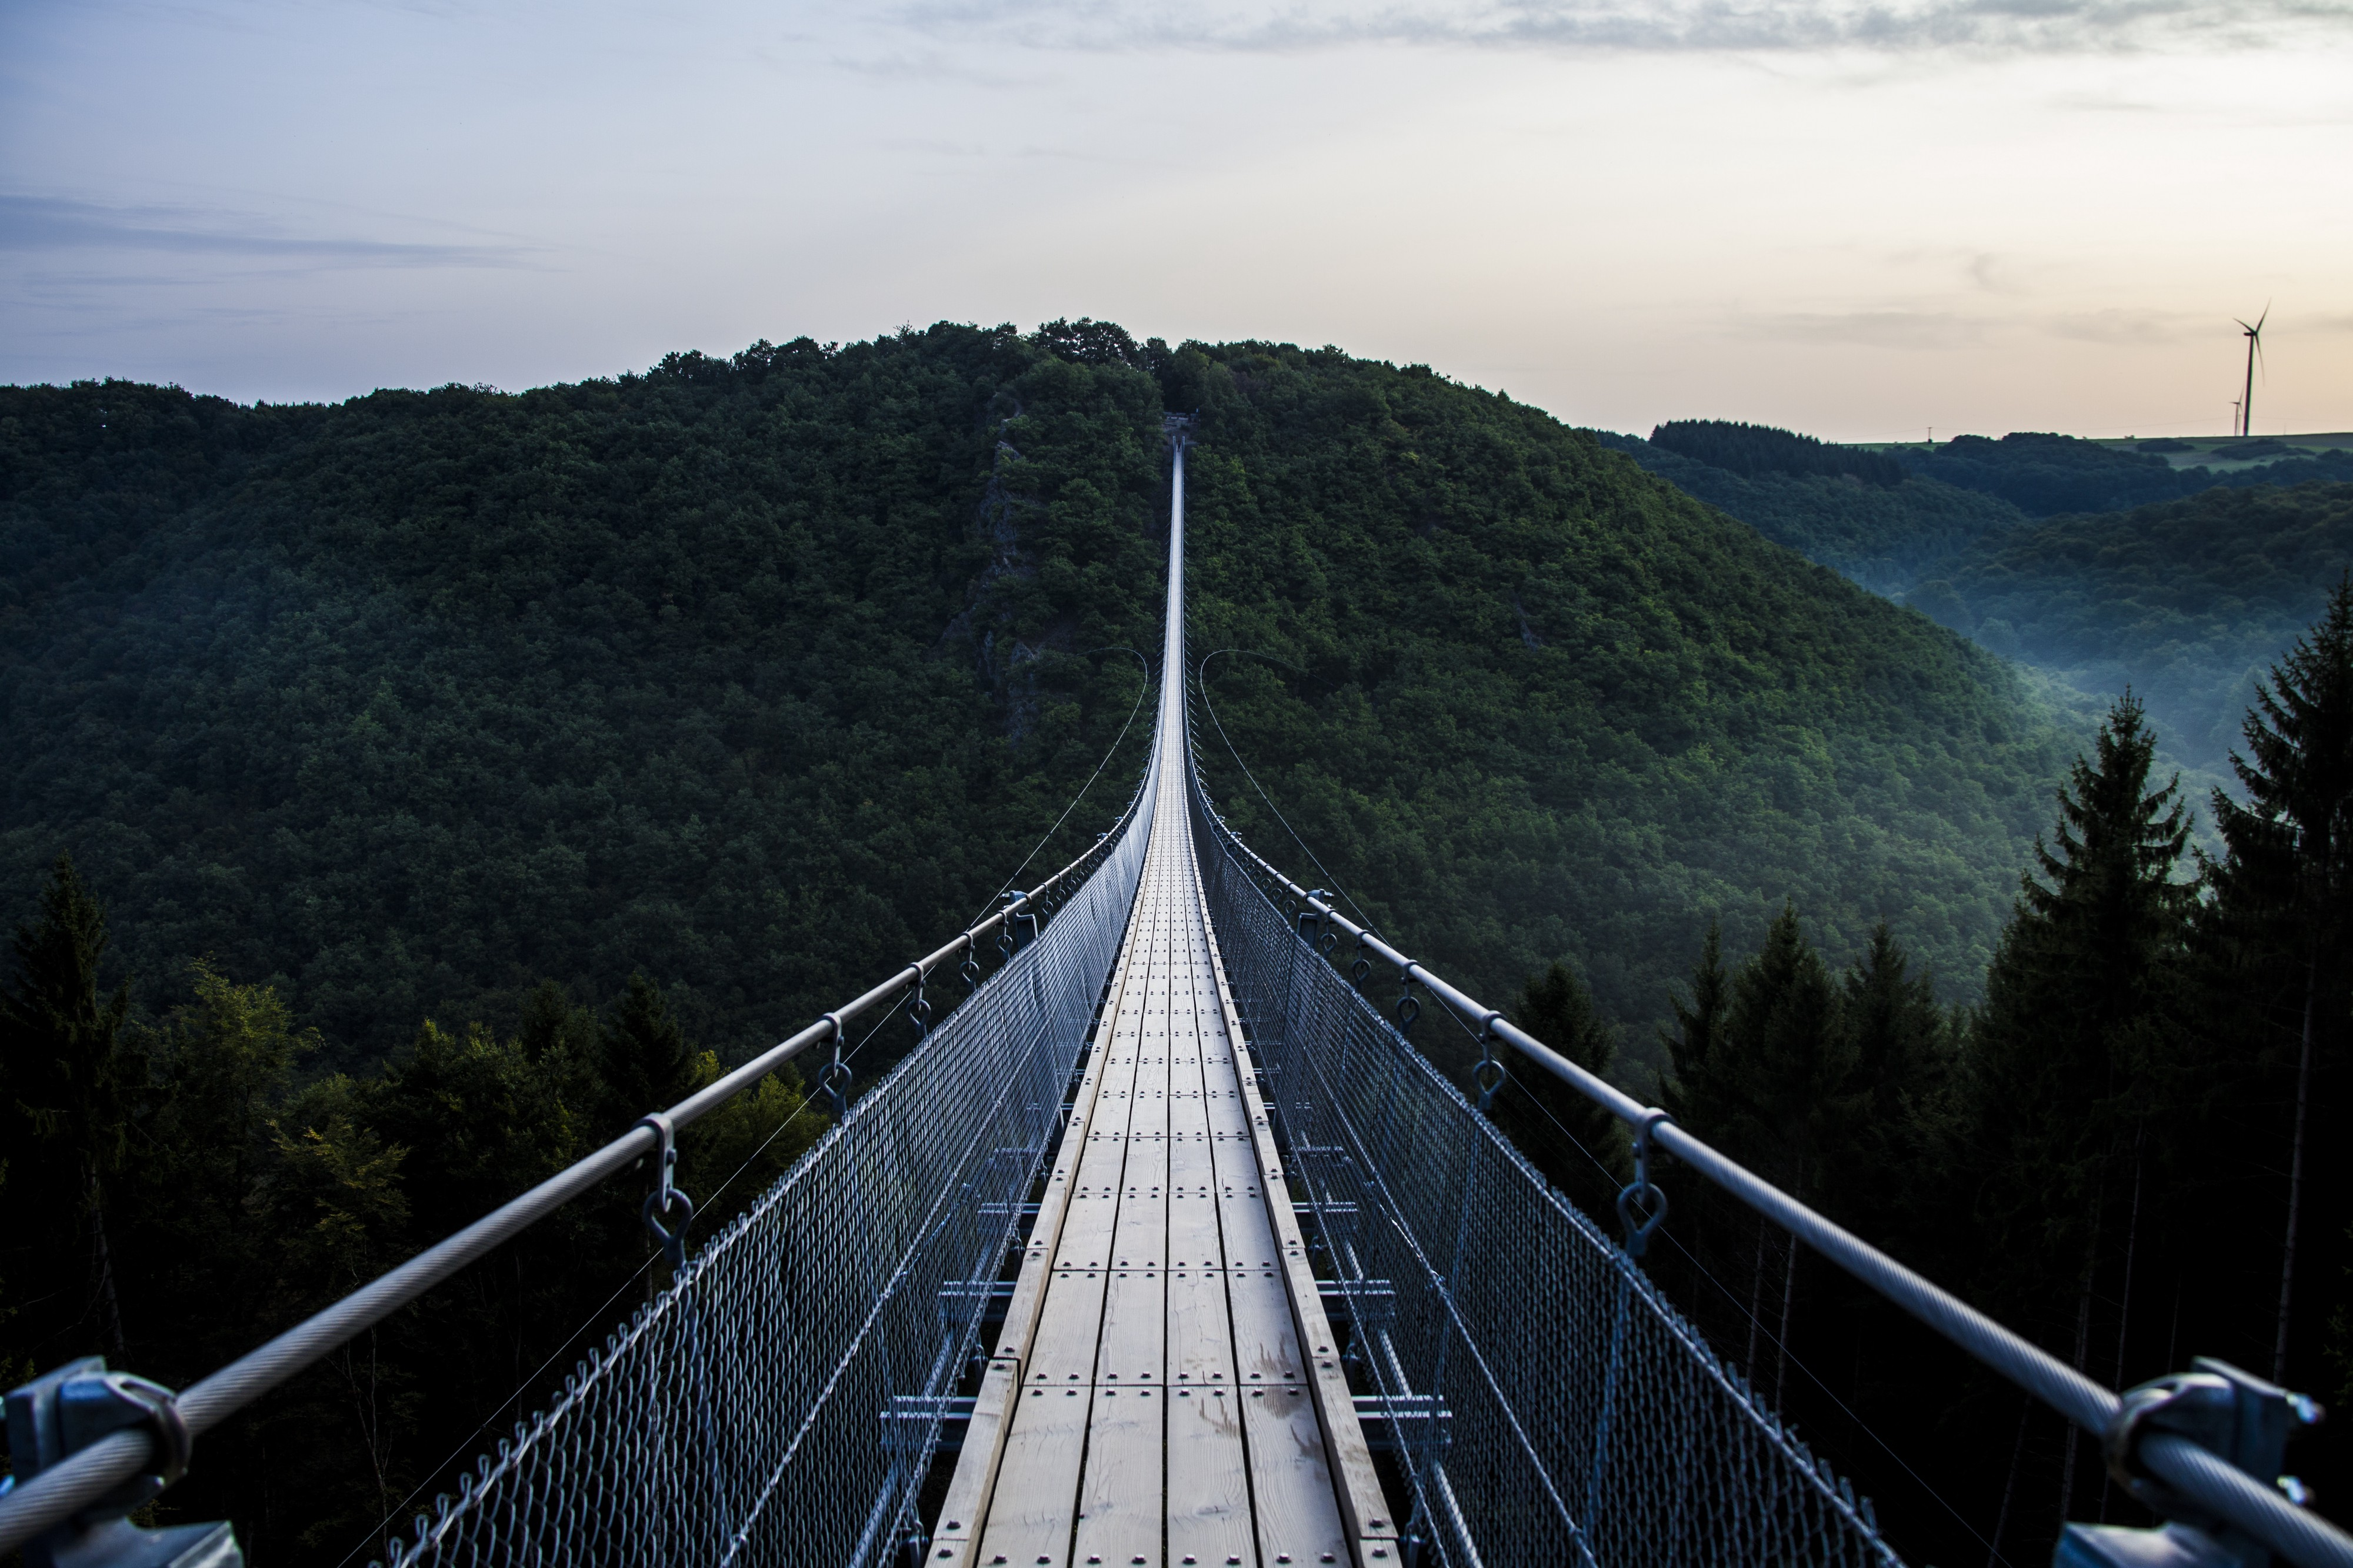 A very long bridge over a valley between two mountains.